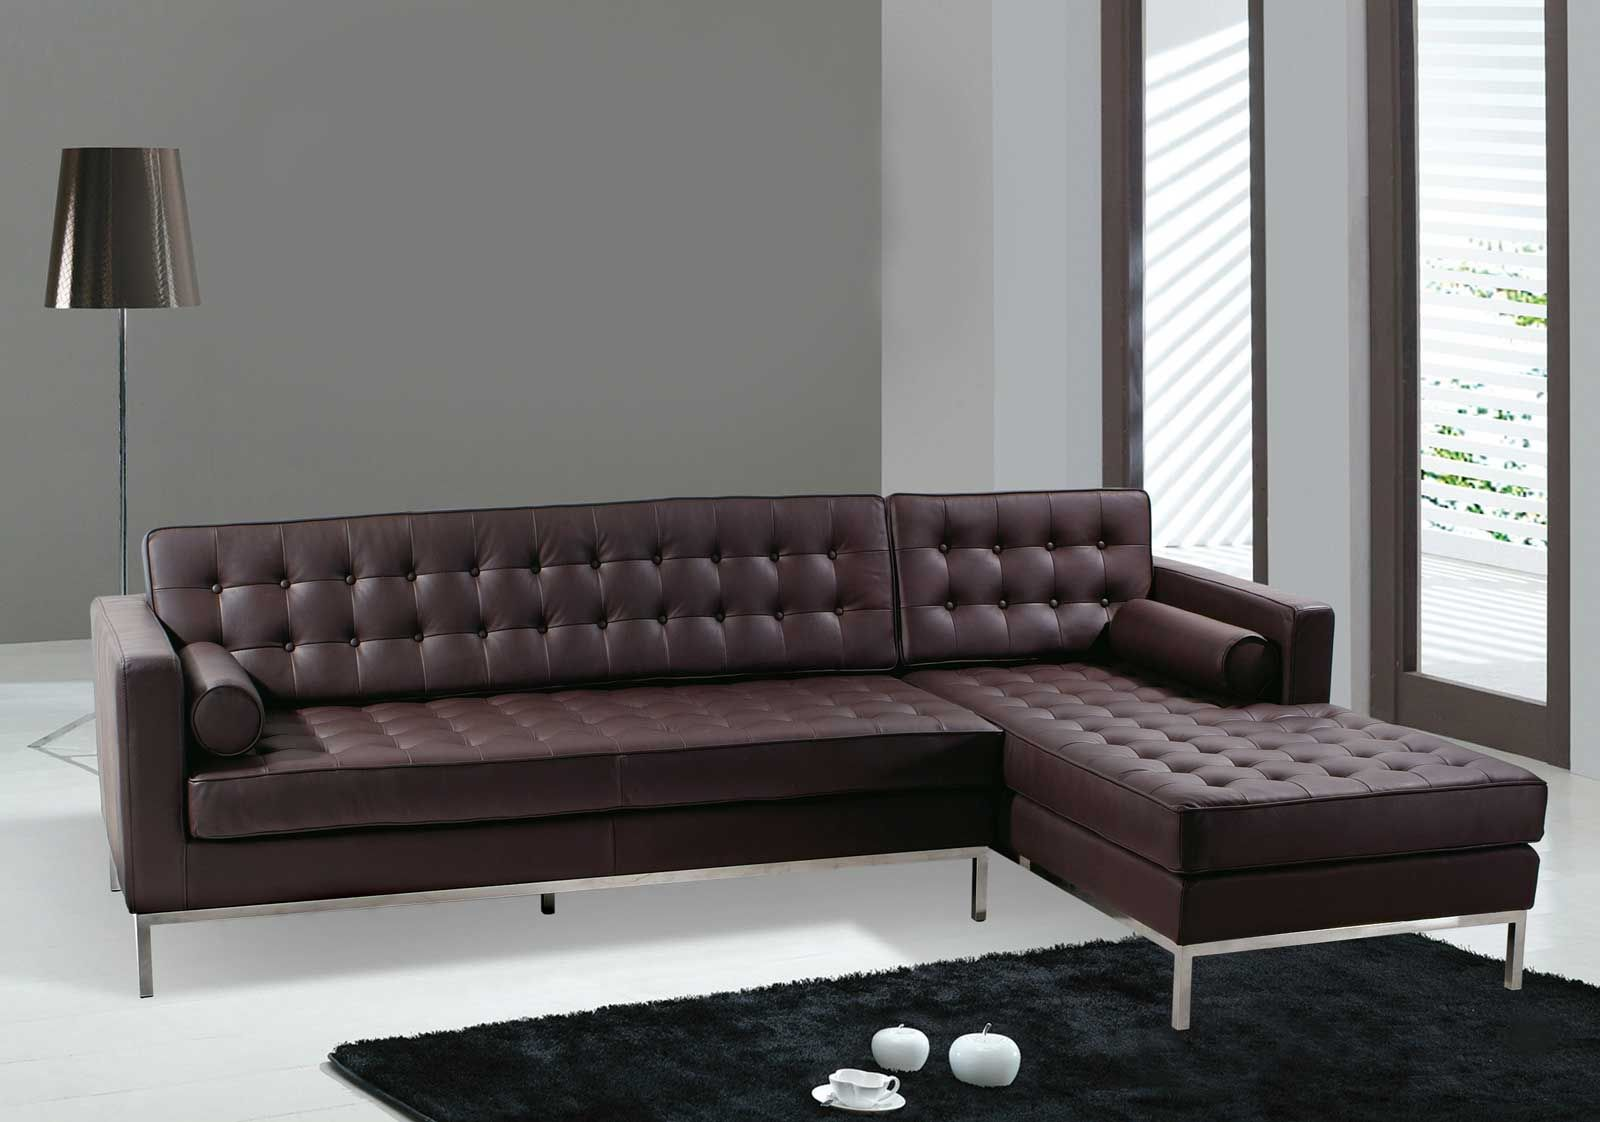 Modern Dark Brown Sectional L Shaped Sofa Design Ideas for